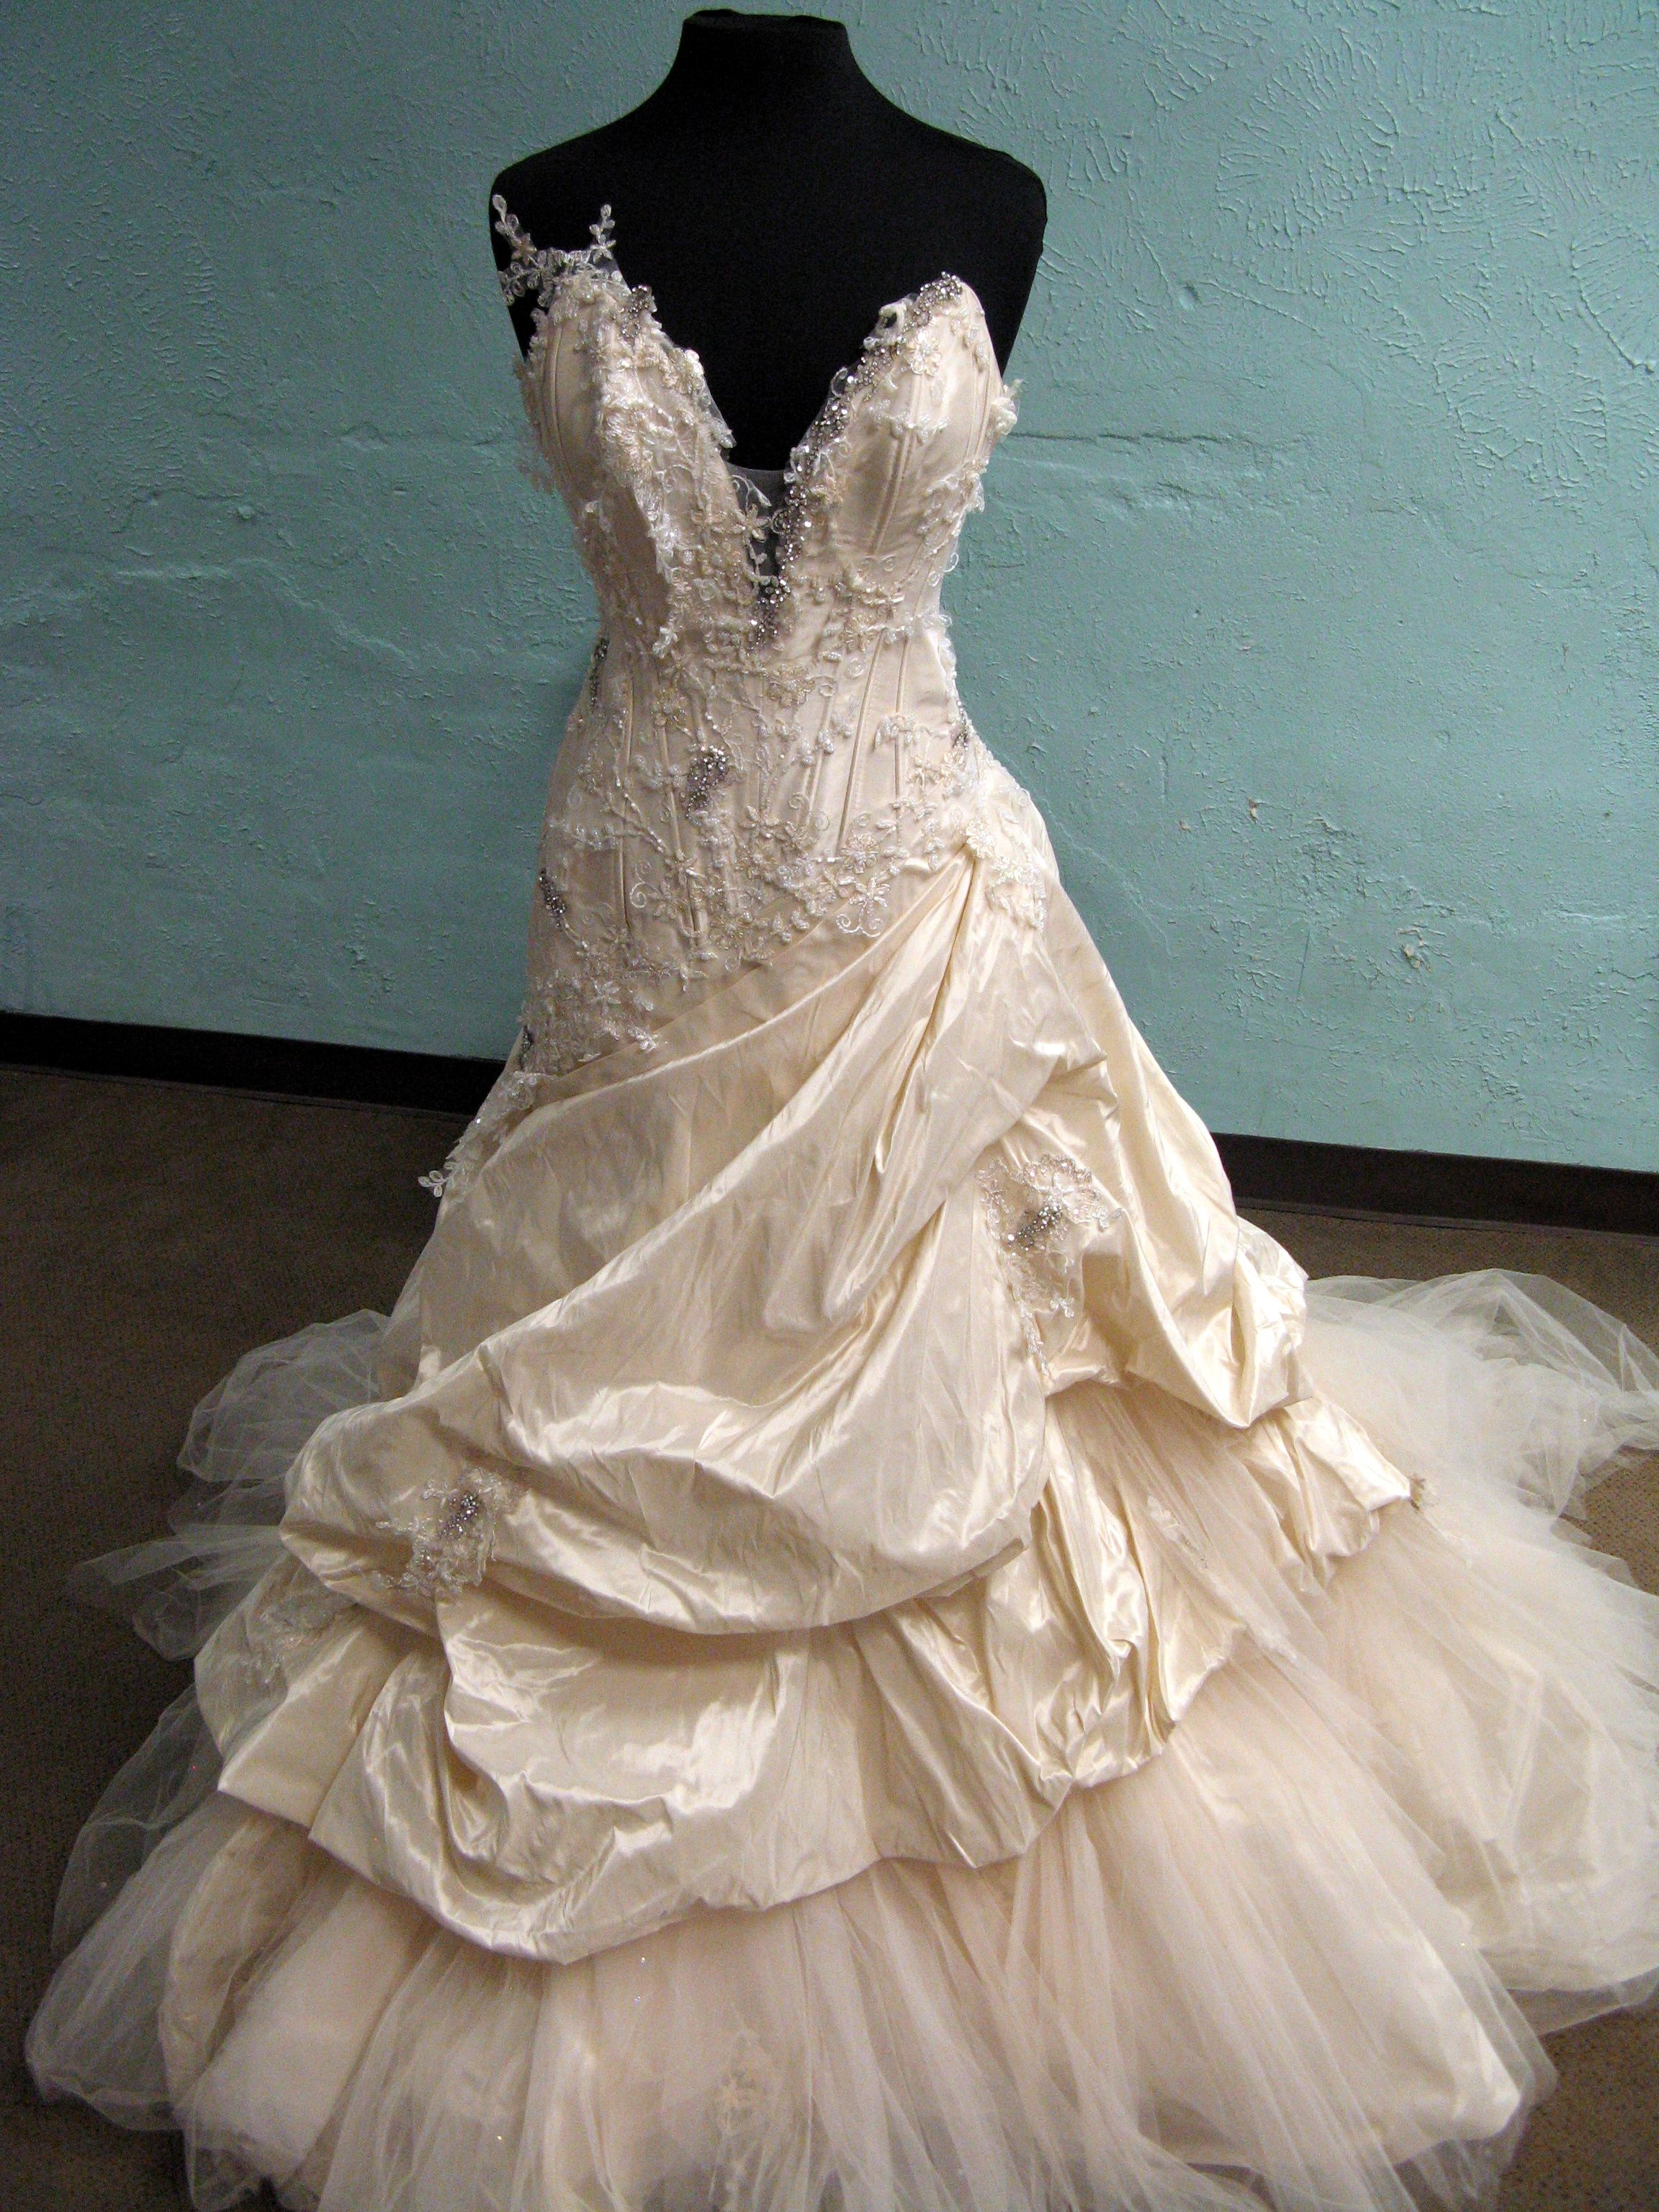 Celine from Farage Couture Bridal | Future wedding | Pinterest ...